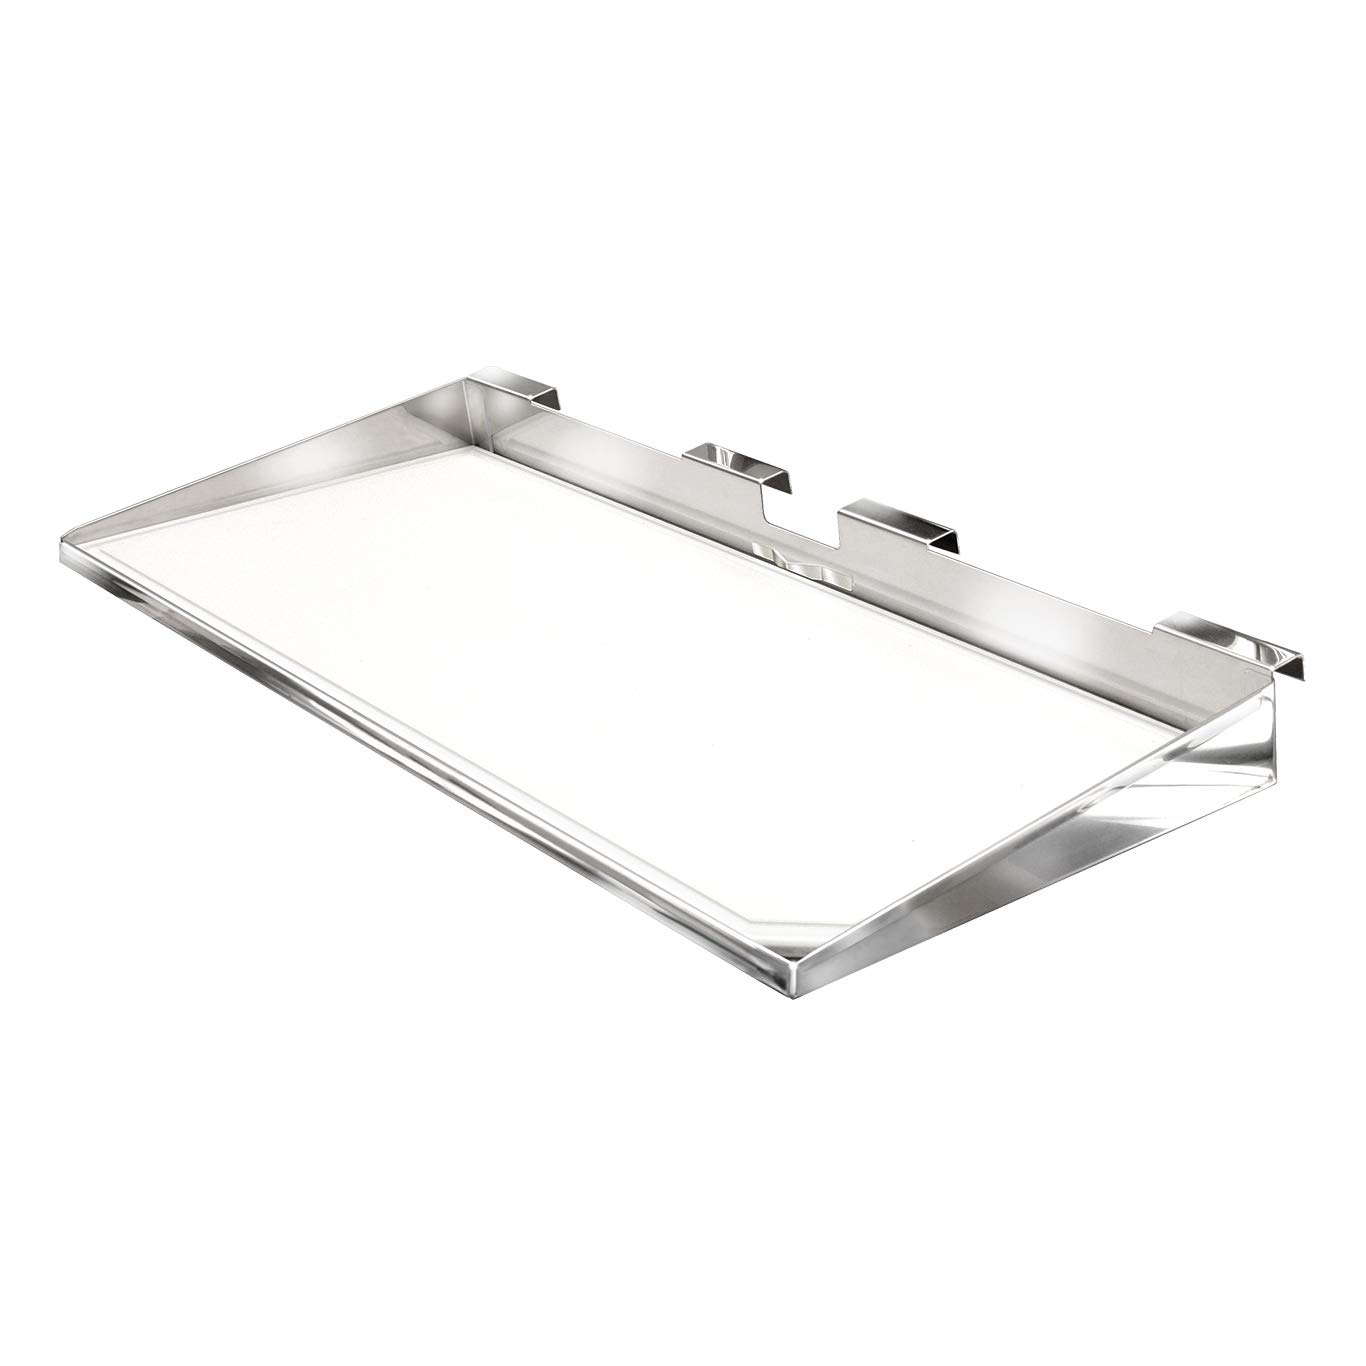 Magma Products, A10-902 Serving Shelf, Removable Cutting Board for 18 inch Grills by Magma